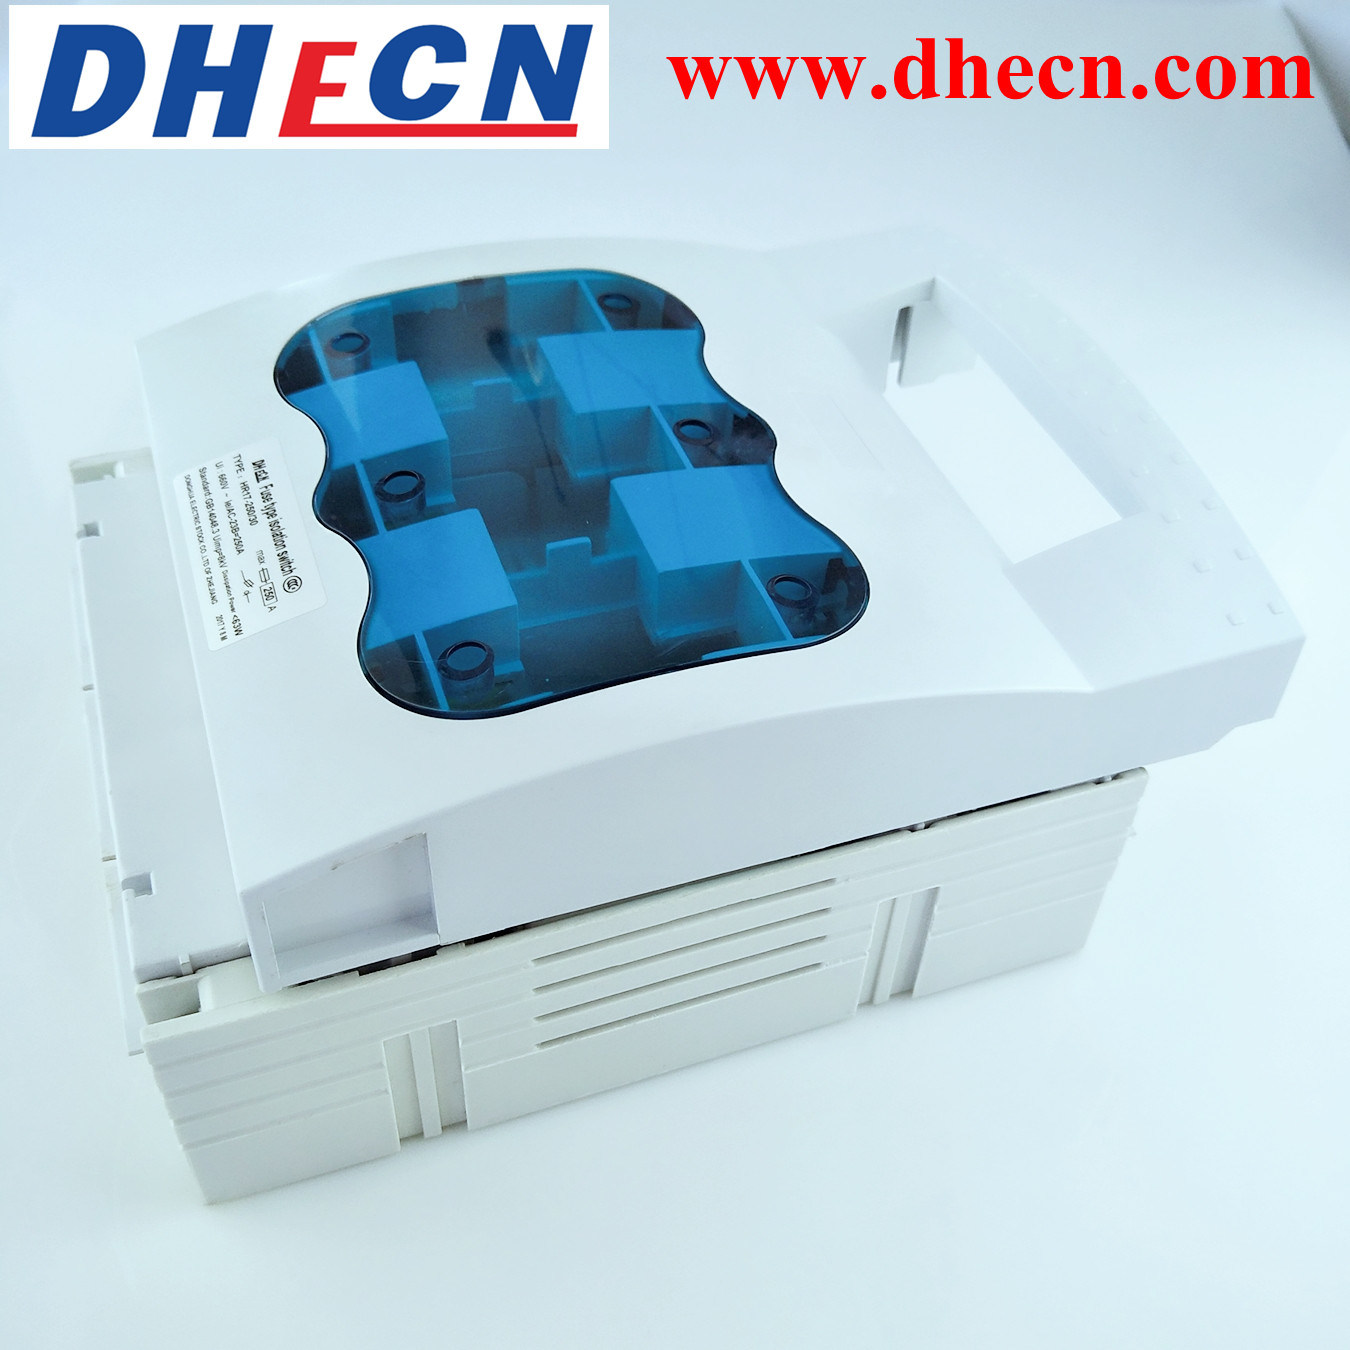 China Fuse Switch Disconnector Hr17b 160 30 160a 3p Type Between Disconnectors Load Switches And Circuit Isolating Isolation